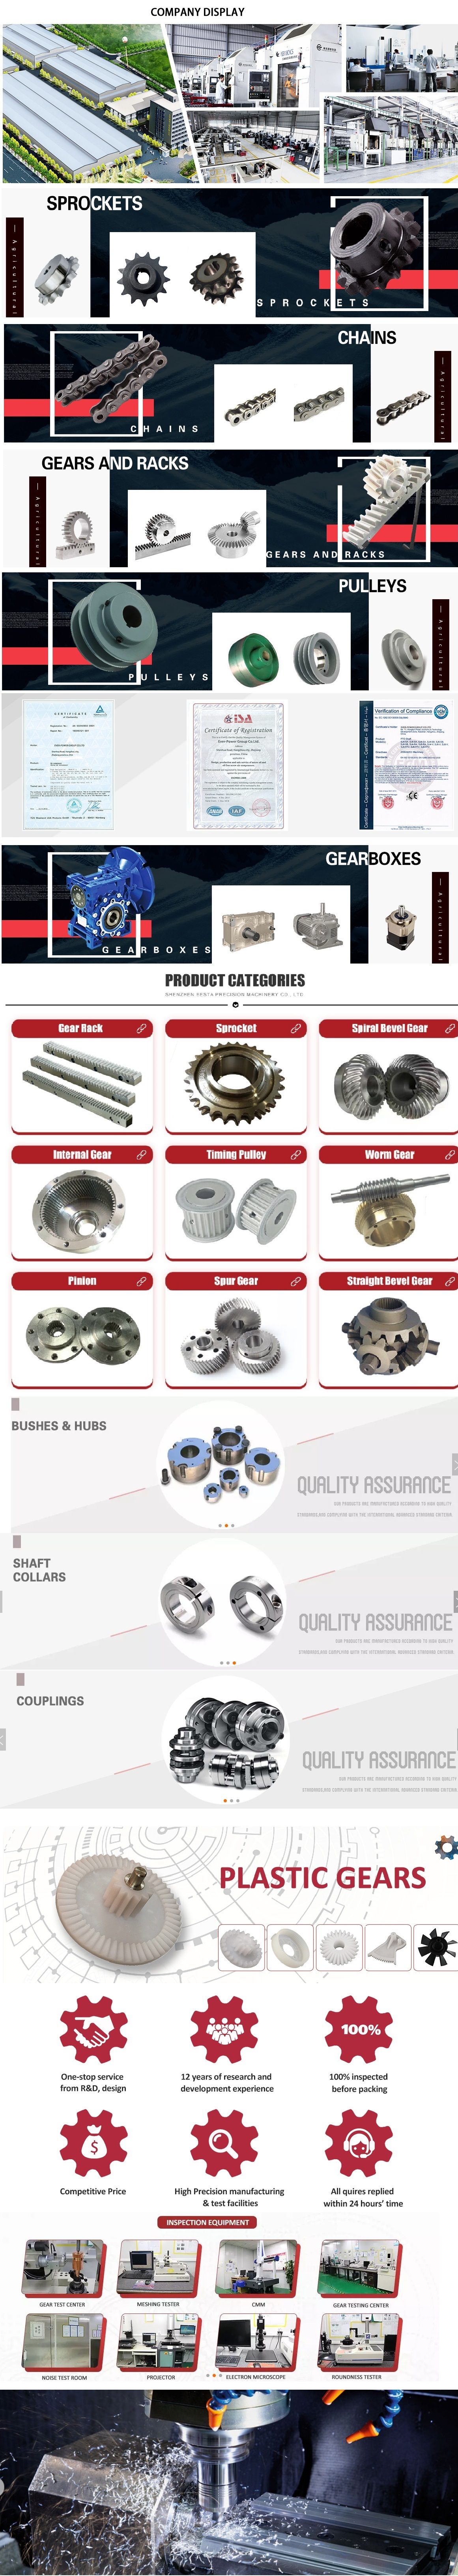 in Ho Chi Minh City Viet Nam  sales   price   shop   near me   near me shop   factory   supplier Zly Zsy Series Bevel Cylindrical Hard Tooth Surface Gearbox manufacturer   best   Cost   Custom   Cheap   wholesaler